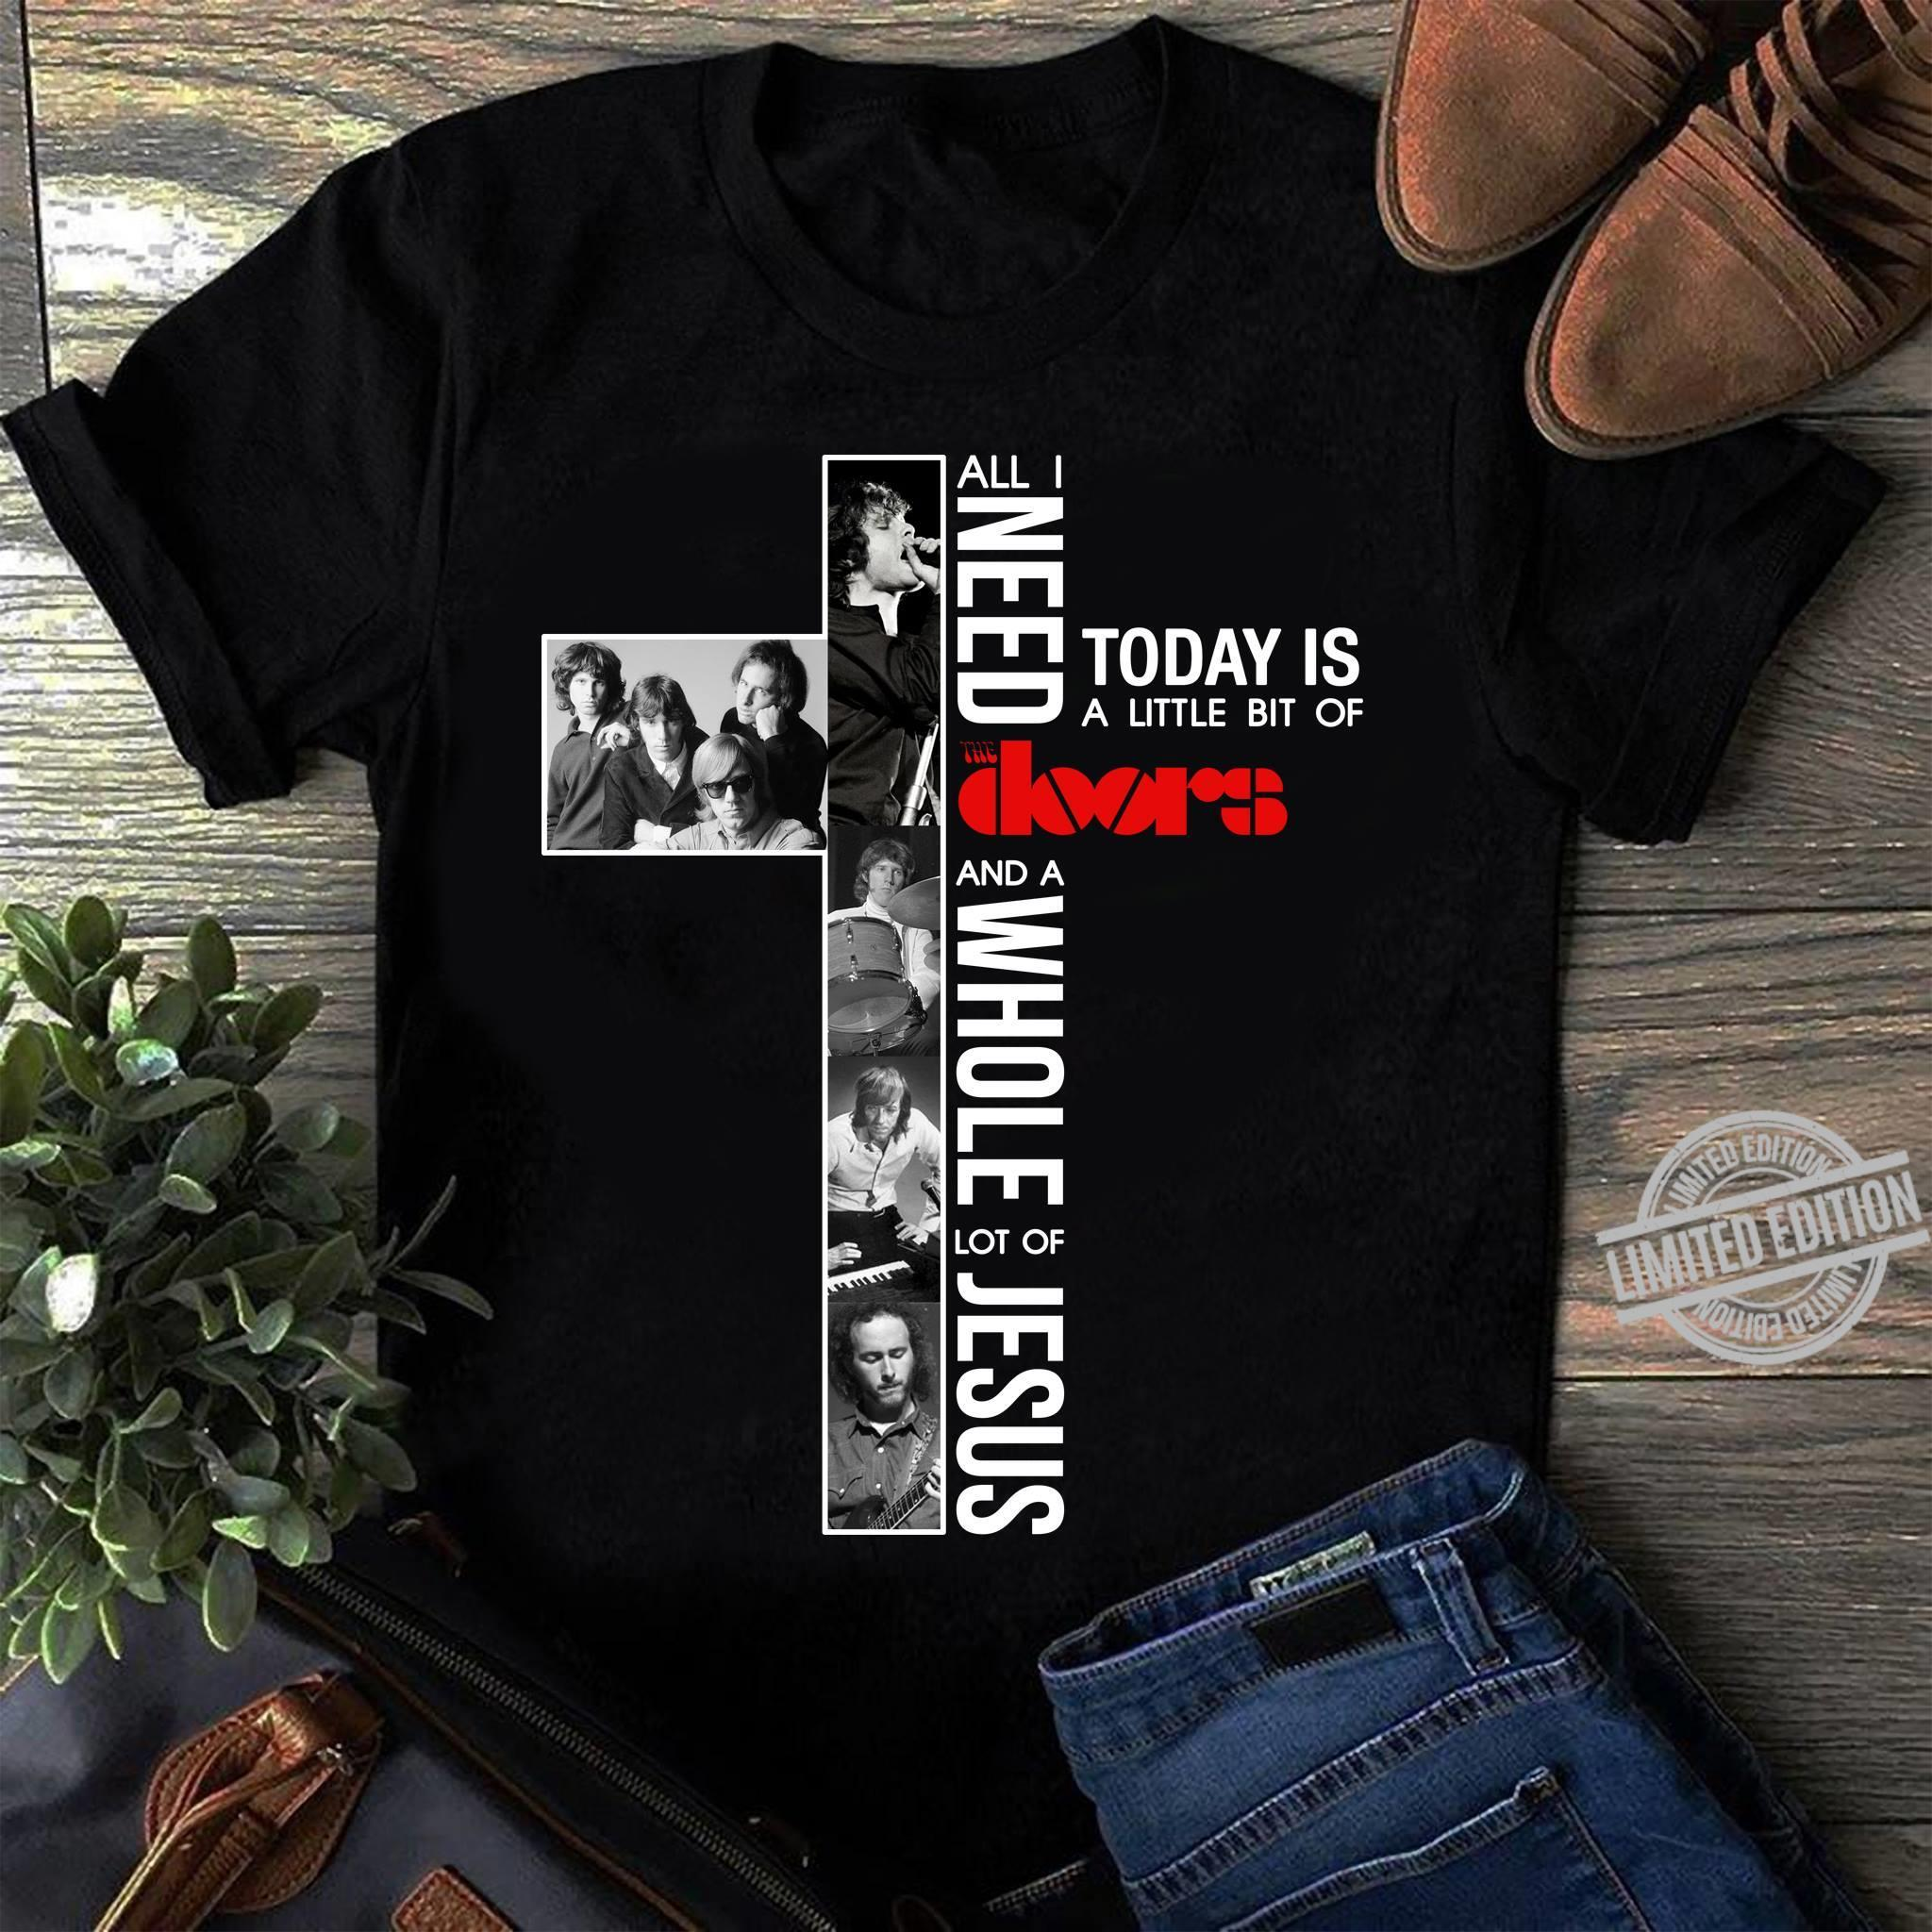 All I Need Today Is A Little Bit Of Doors And A Whole Lot Of Jesus Shirt